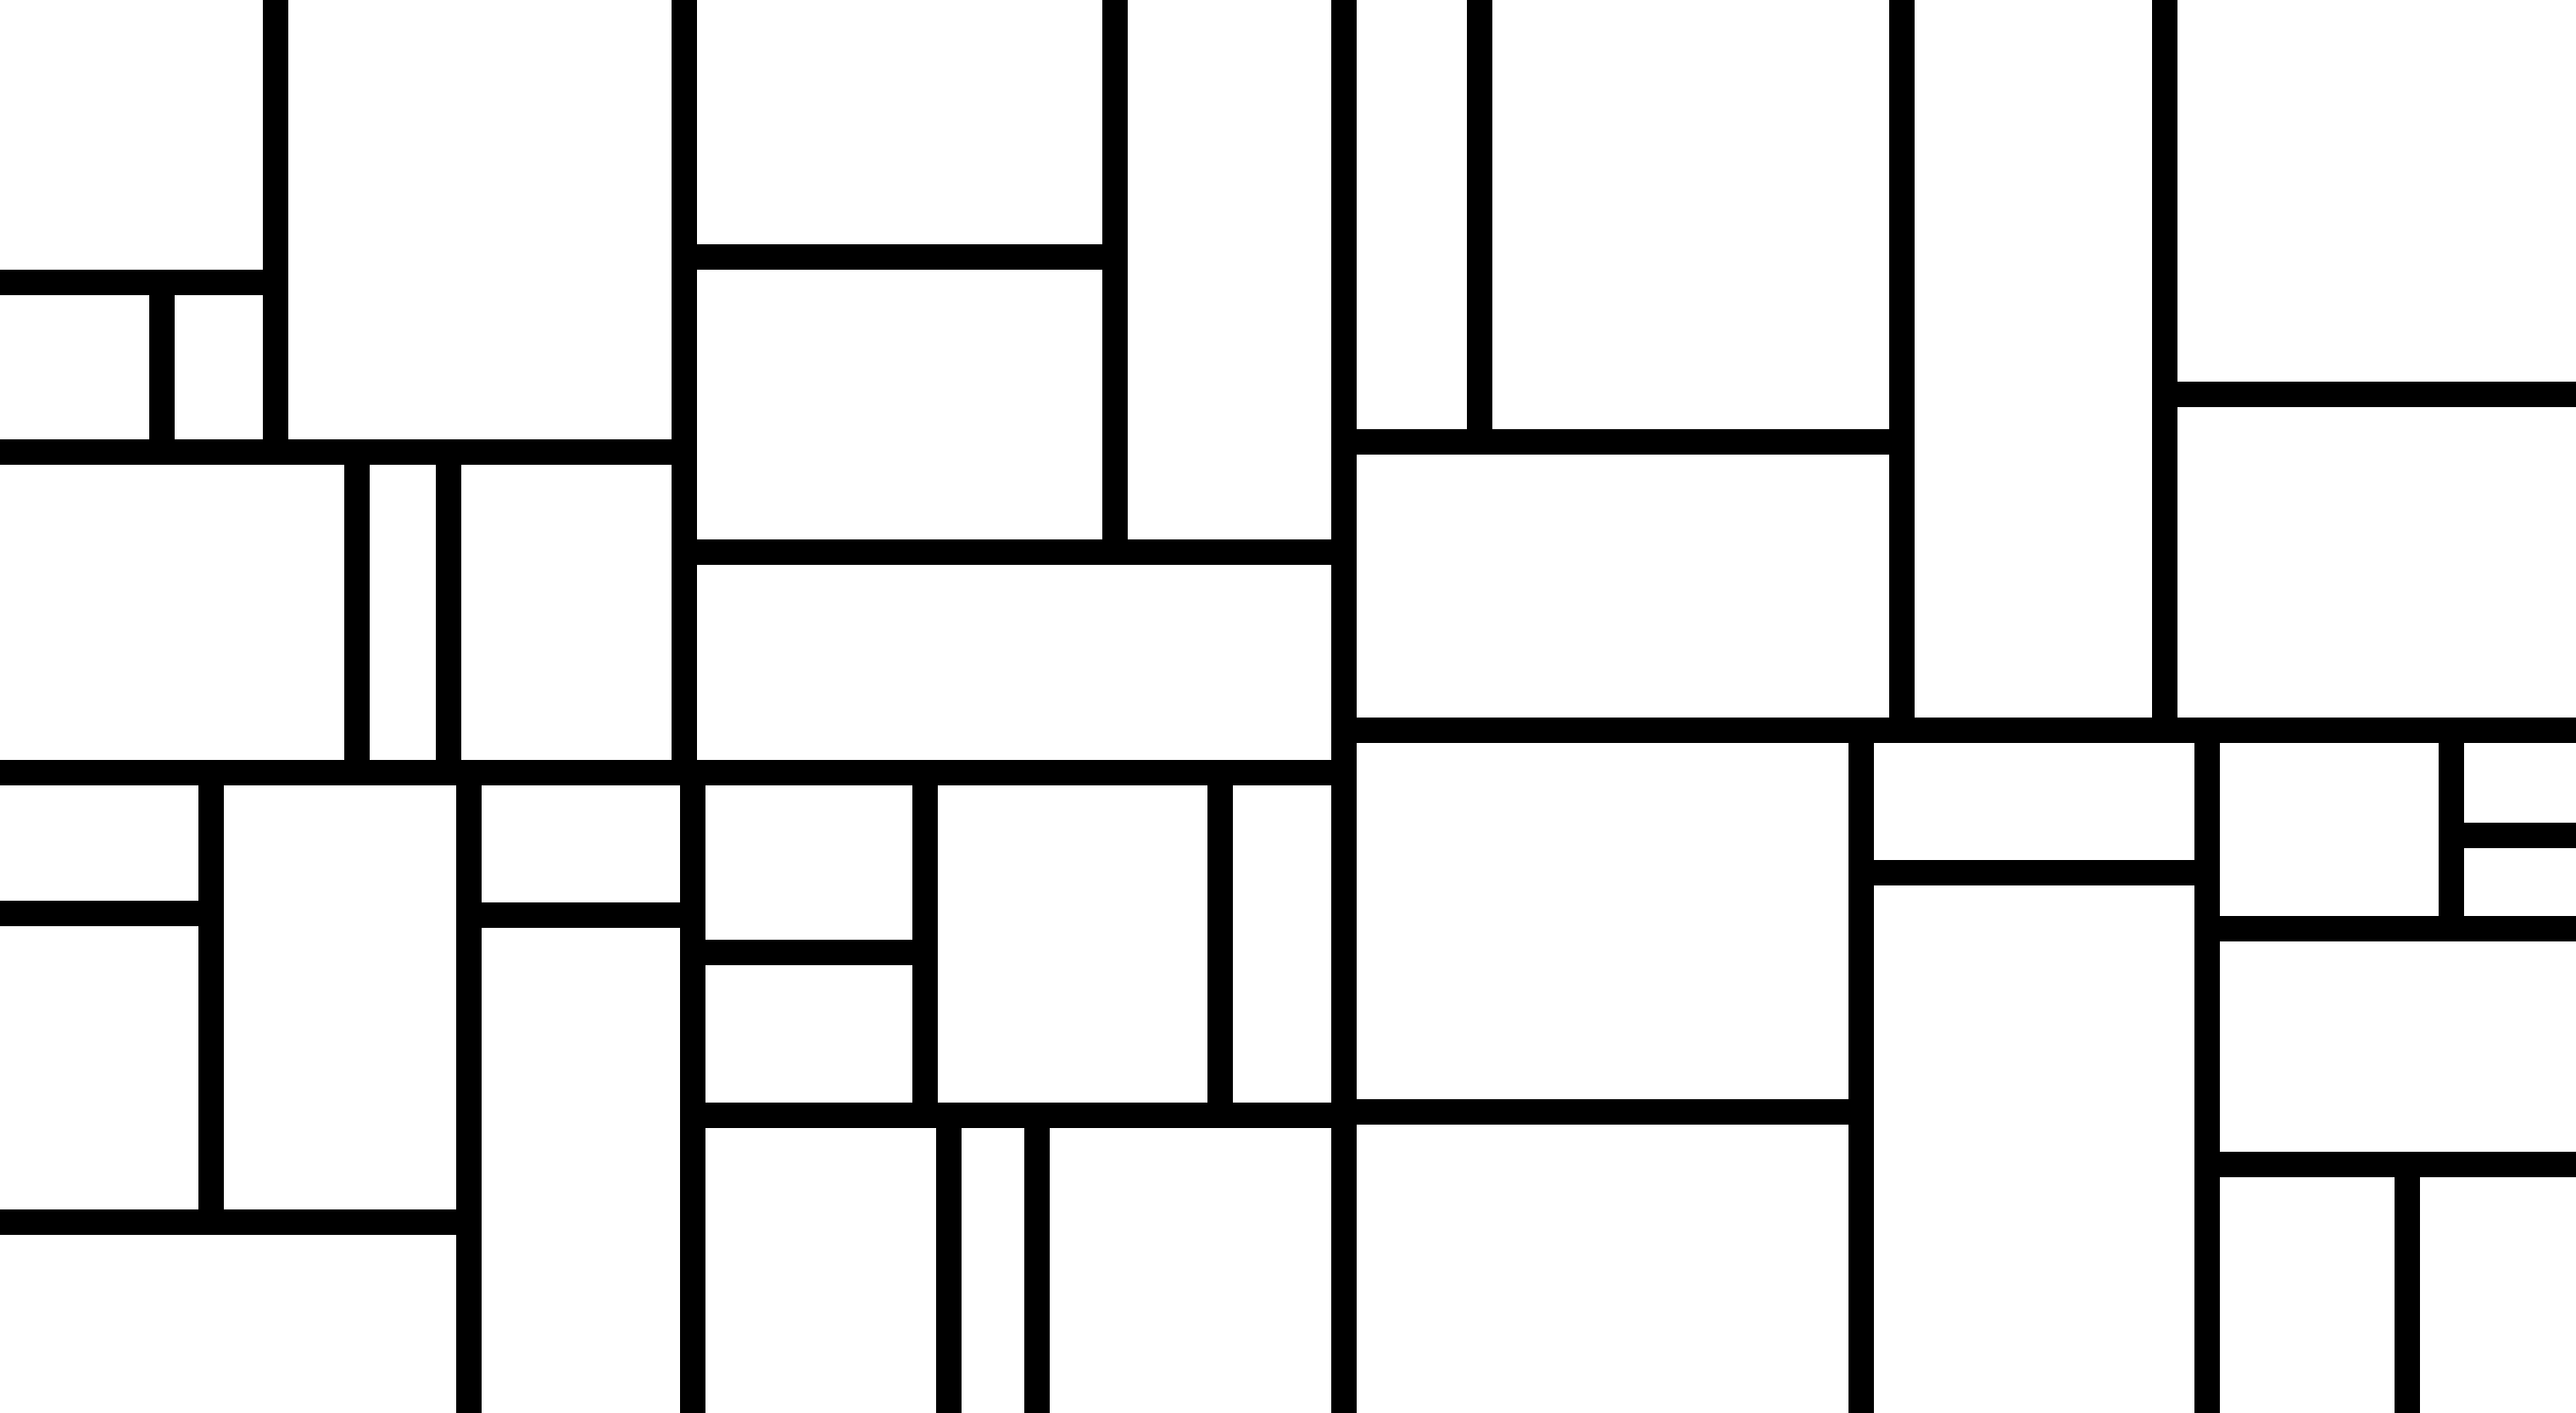 3038x1666 Sol Lewitt's Wall Drawing With Treemap And Randomization